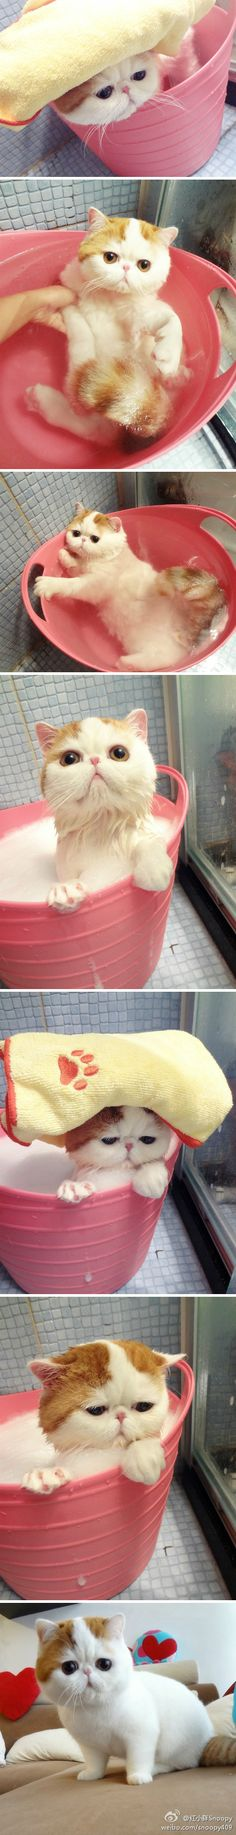 First off this cat is absolutely adorable, Second, I can believe that cat just sits in the bath like that! I WISH my cat would do that!